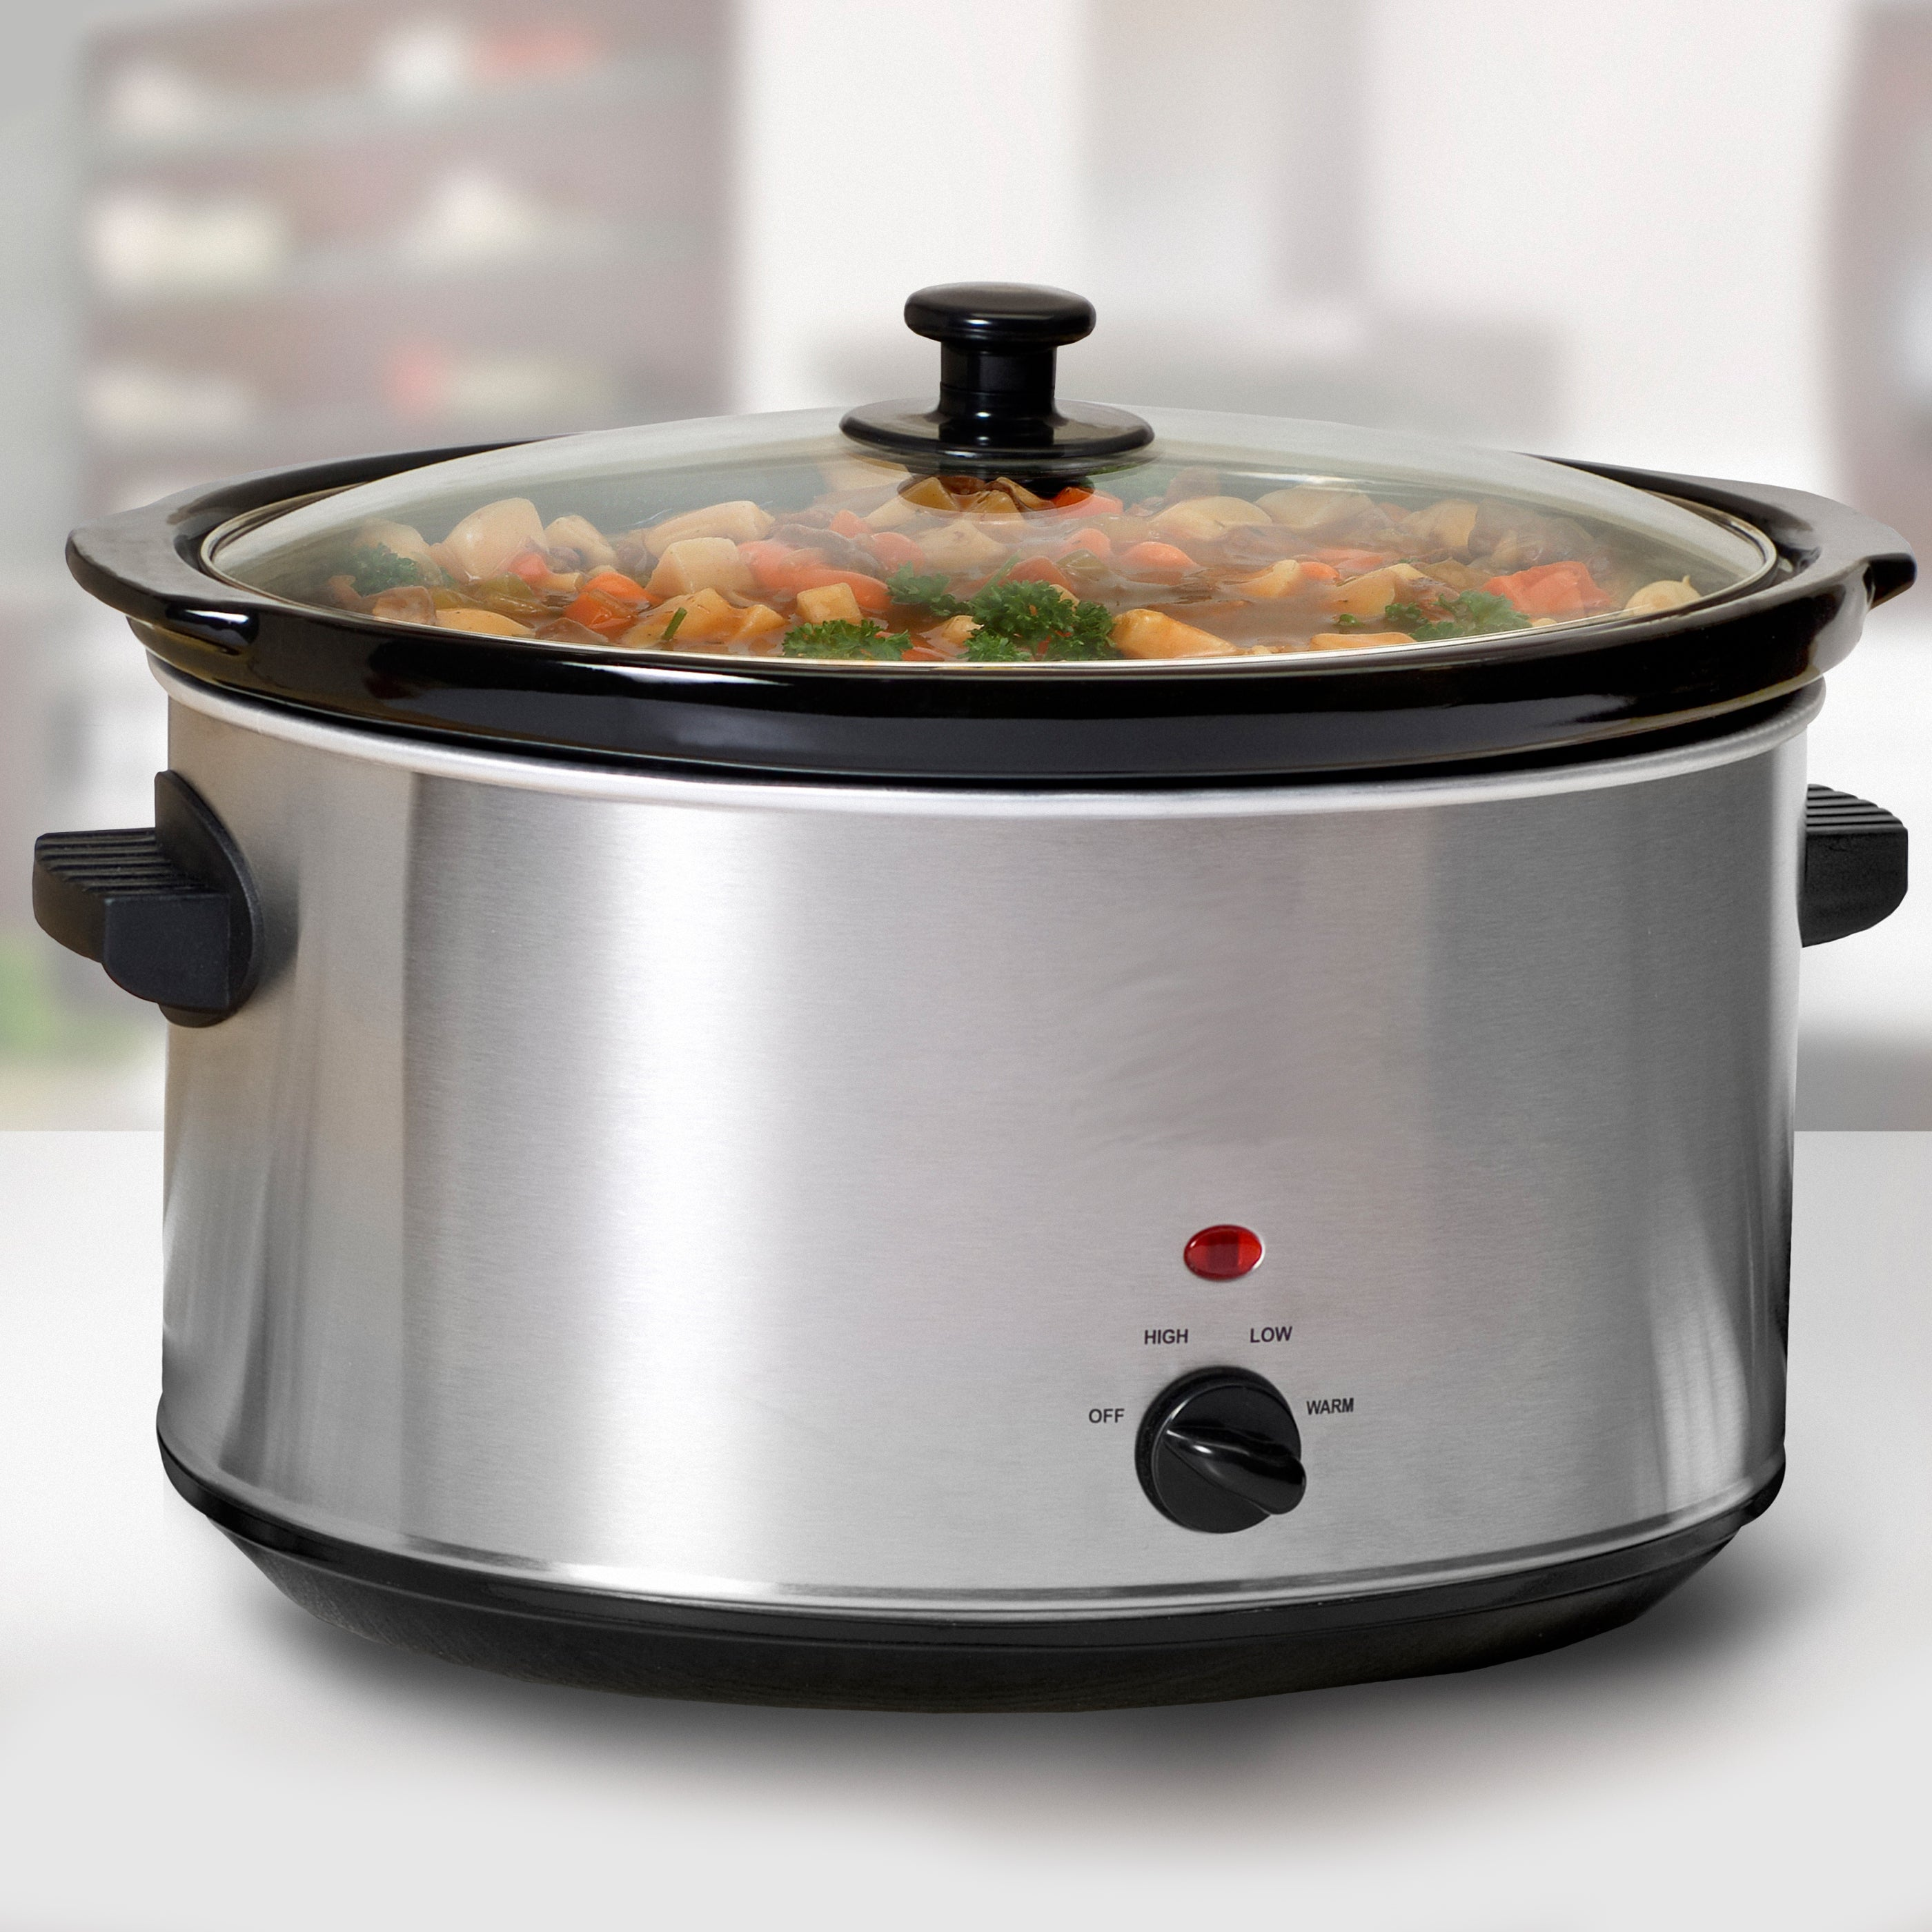 Overstock.com Stainless Steel 8.5-quart Slow Cooker at Sears.com